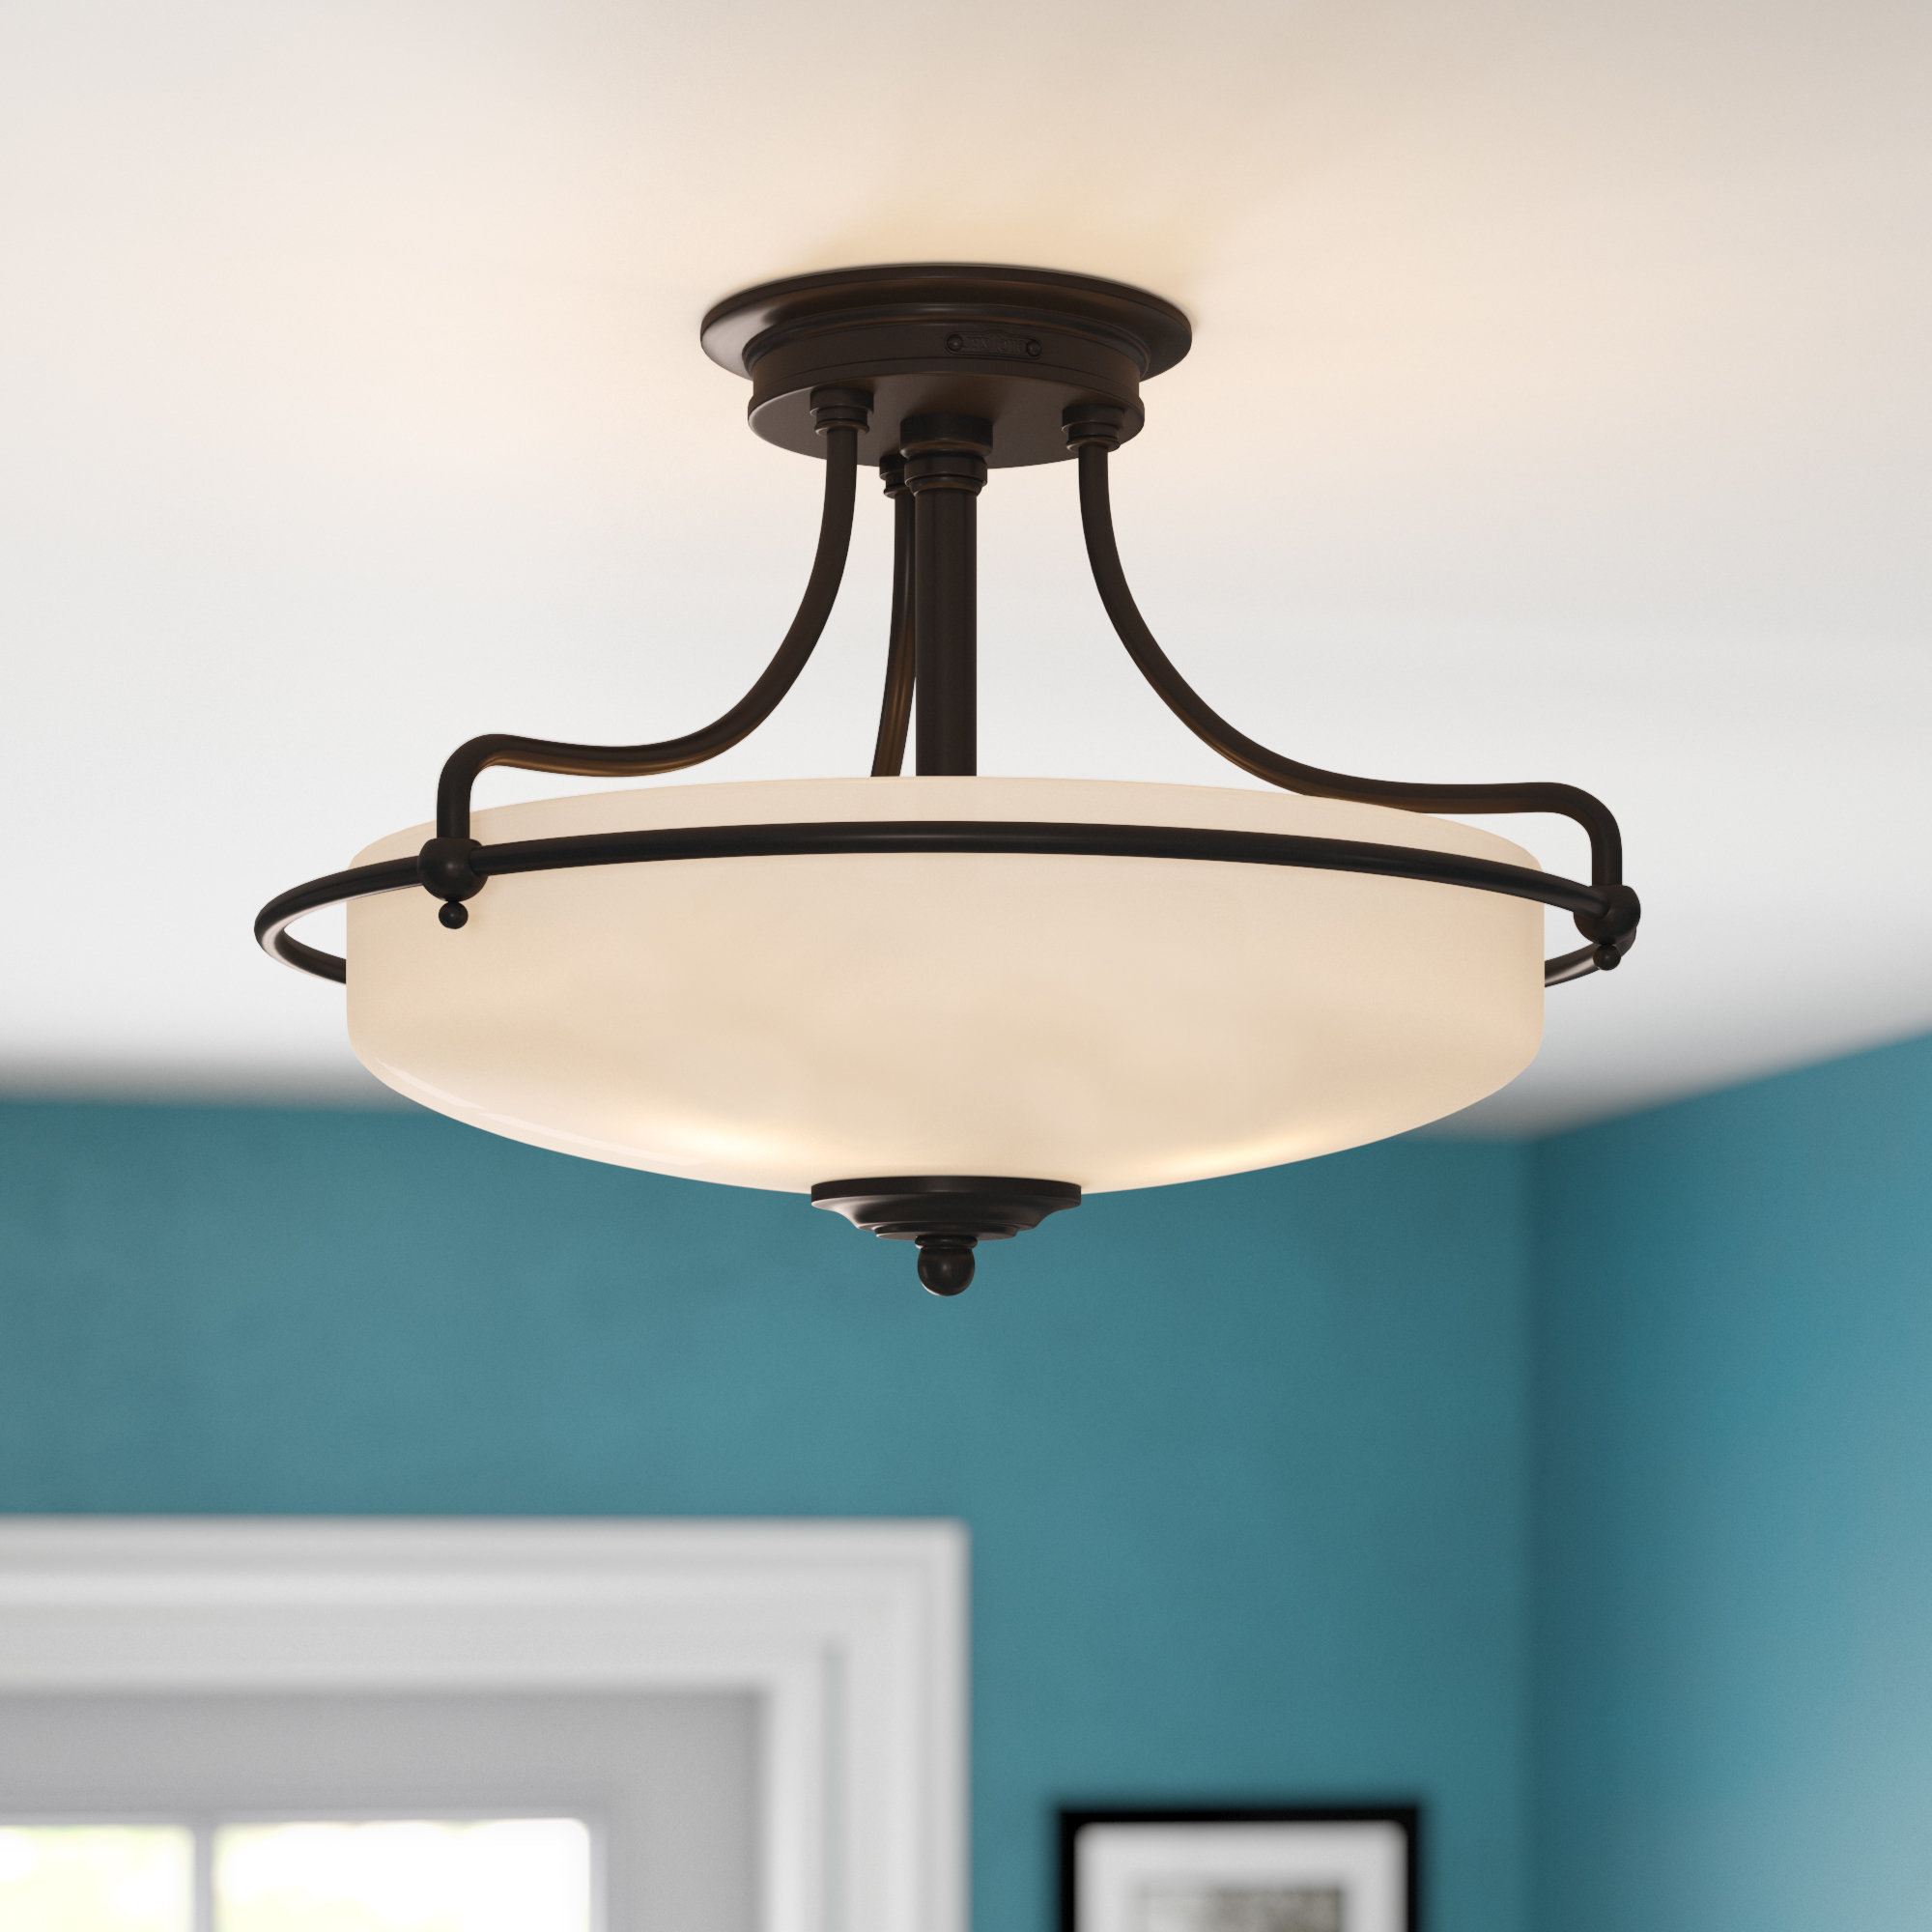 Well Known Red Barrel Studio Abernathy 1 Light Dome Pendant & Reviews With Regard To Abernathy 1 Light Dome Pendants (View 17 of 20)